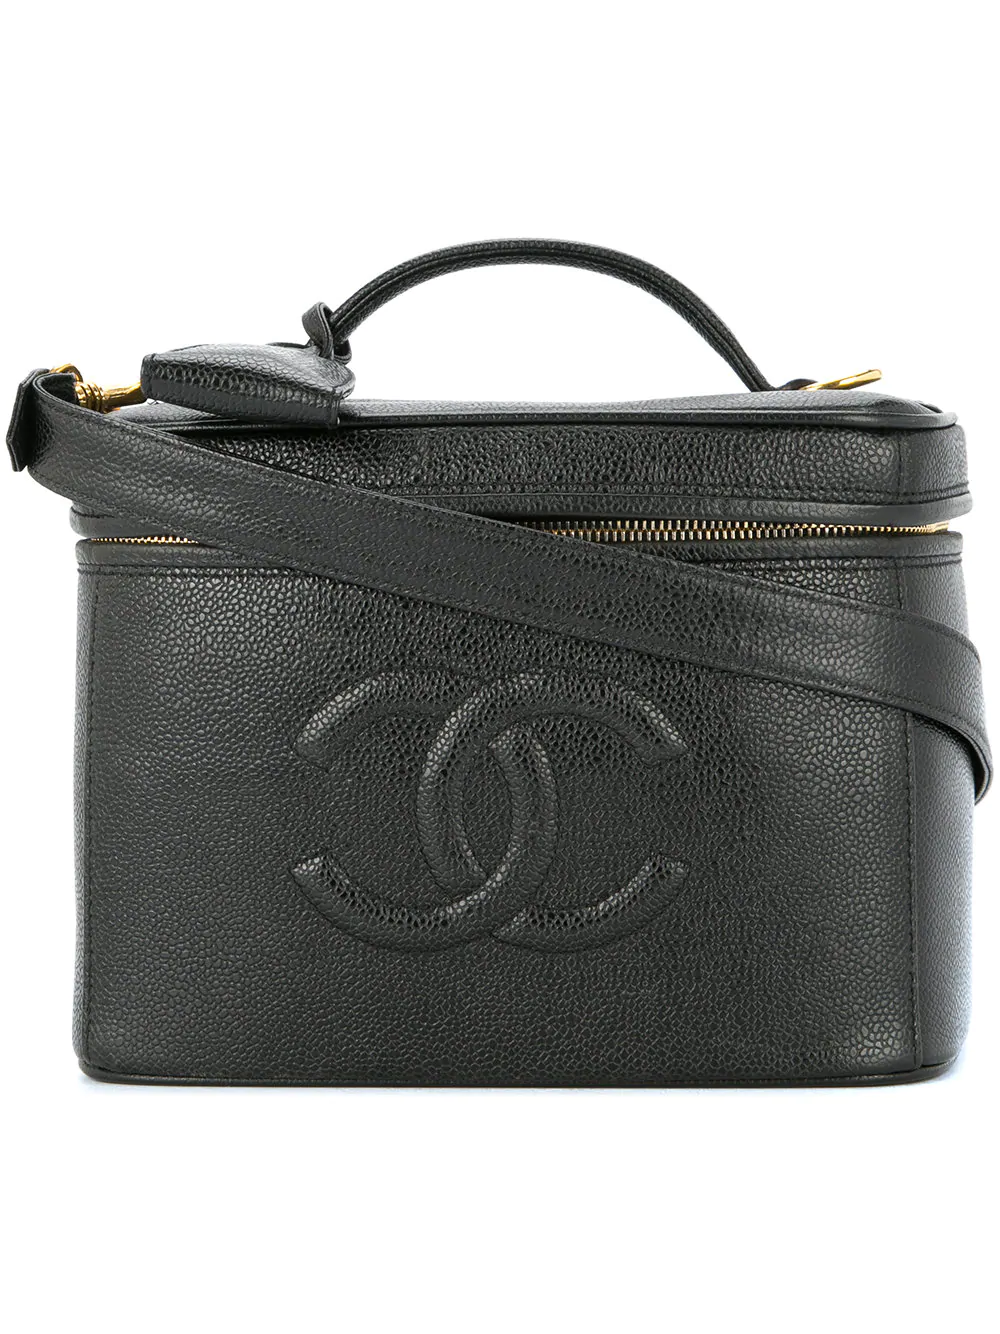 2a02ace49ed6f7 Chanel Cosmetic Vanity Hand Bag In Black | ModeSens